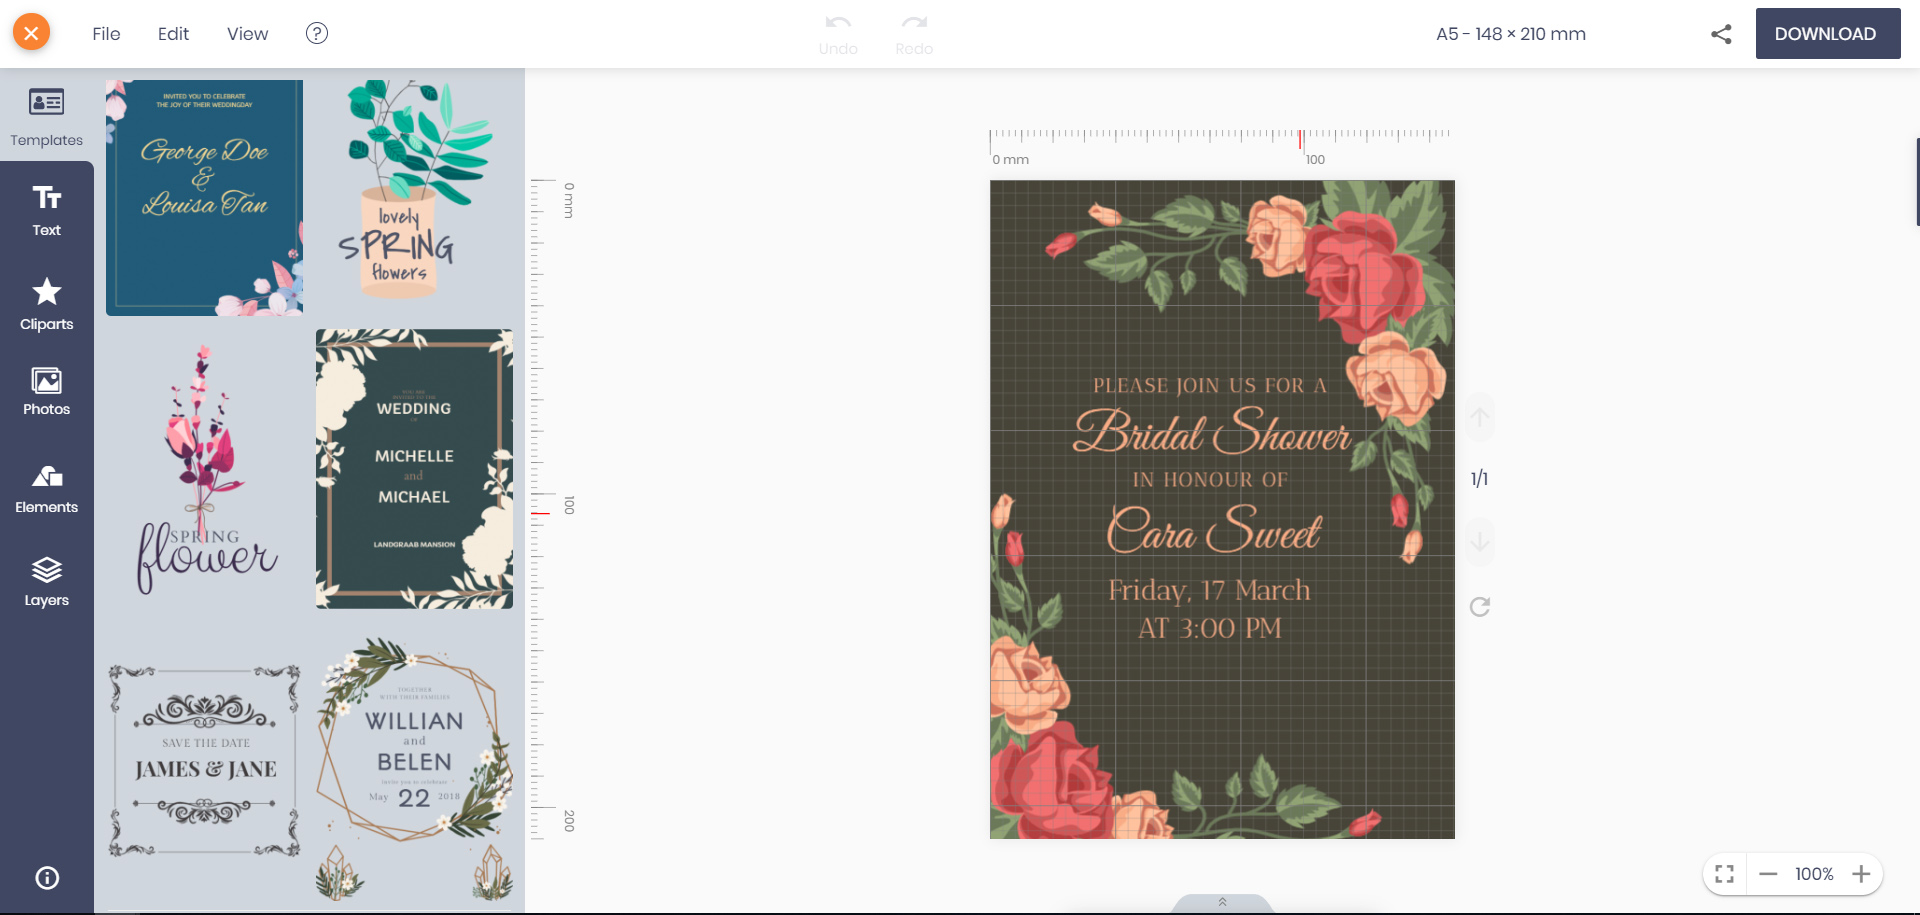 Editing Online Wedding Invitation With Enthralling And Unique